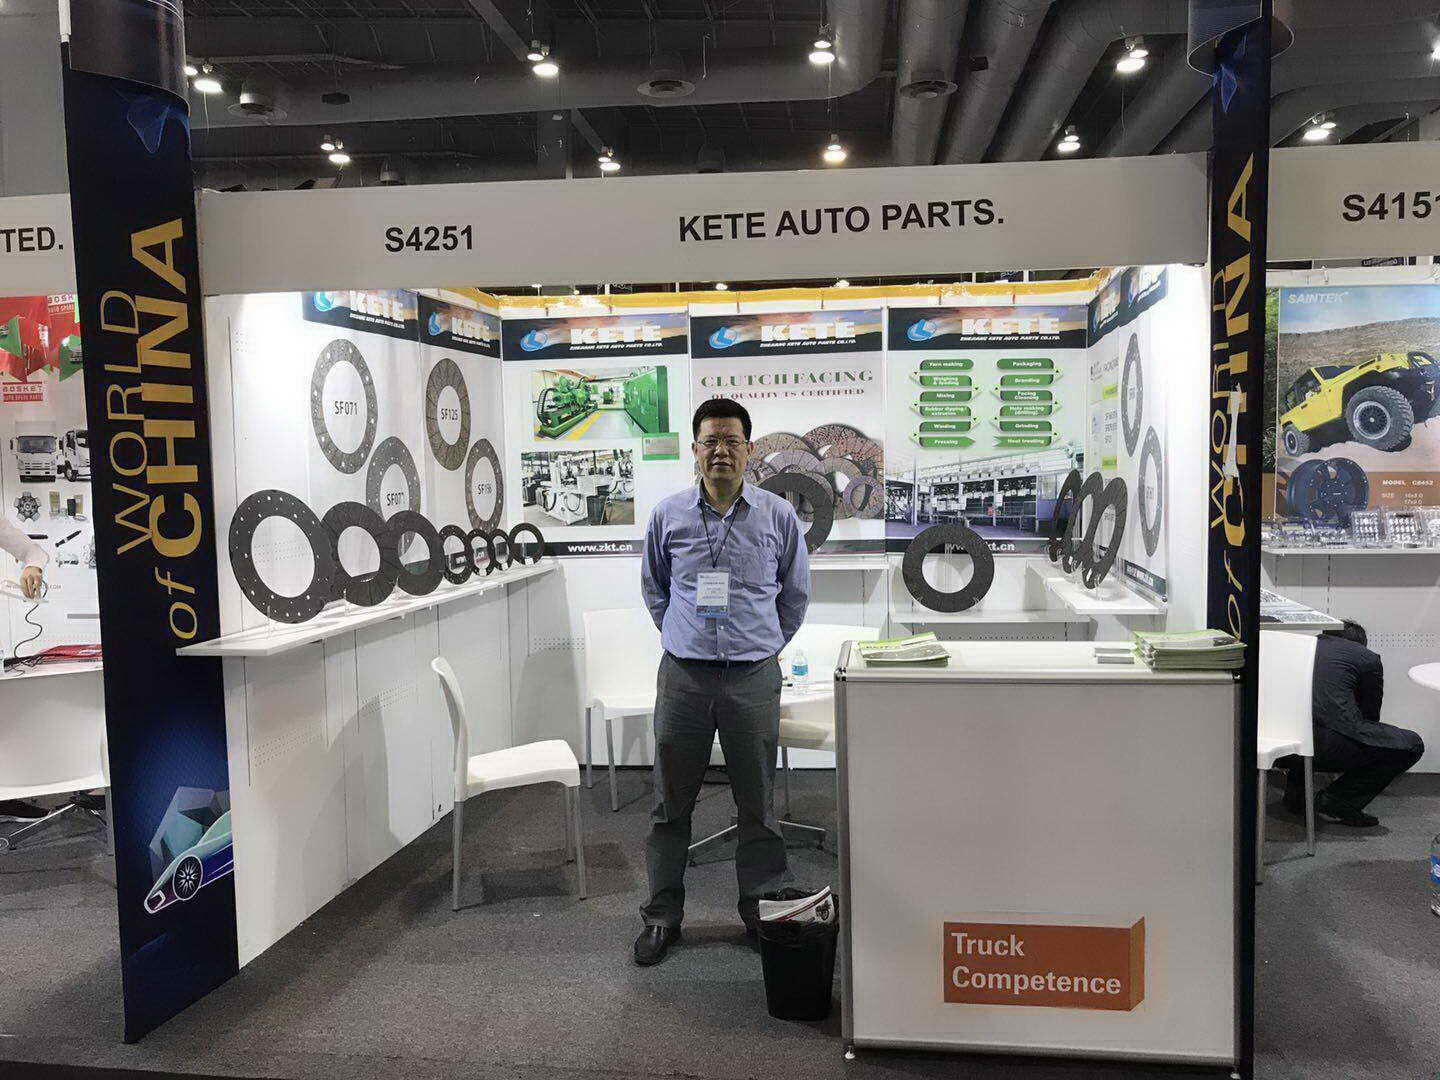 2018 Frankfurt (Mexico) Auto Parts Exhibition